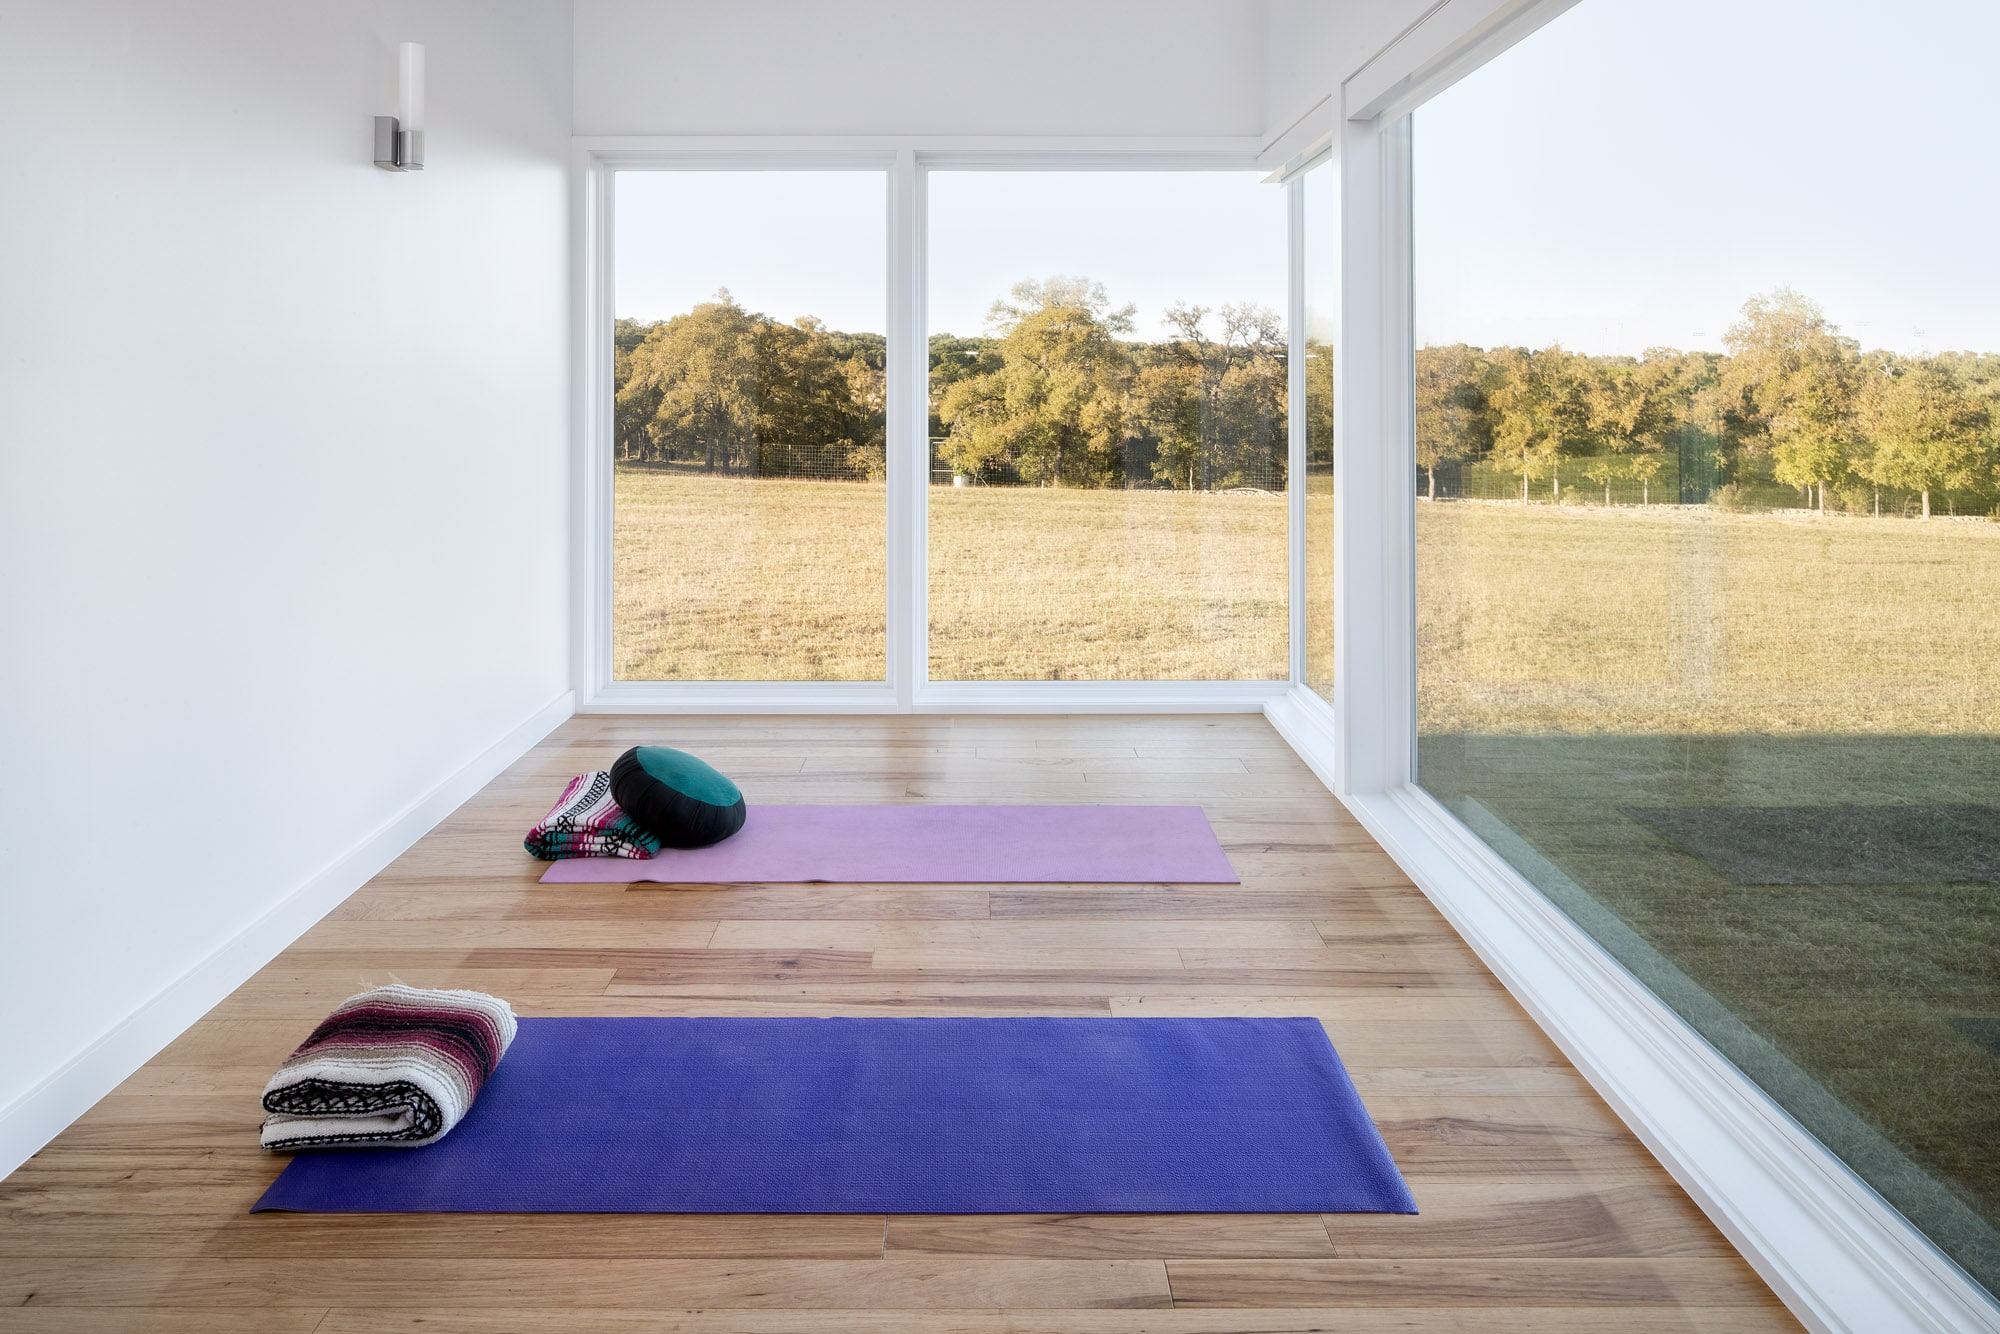 Yoga or meditation room with large windows Self-sustaining home in Wimberley Texas